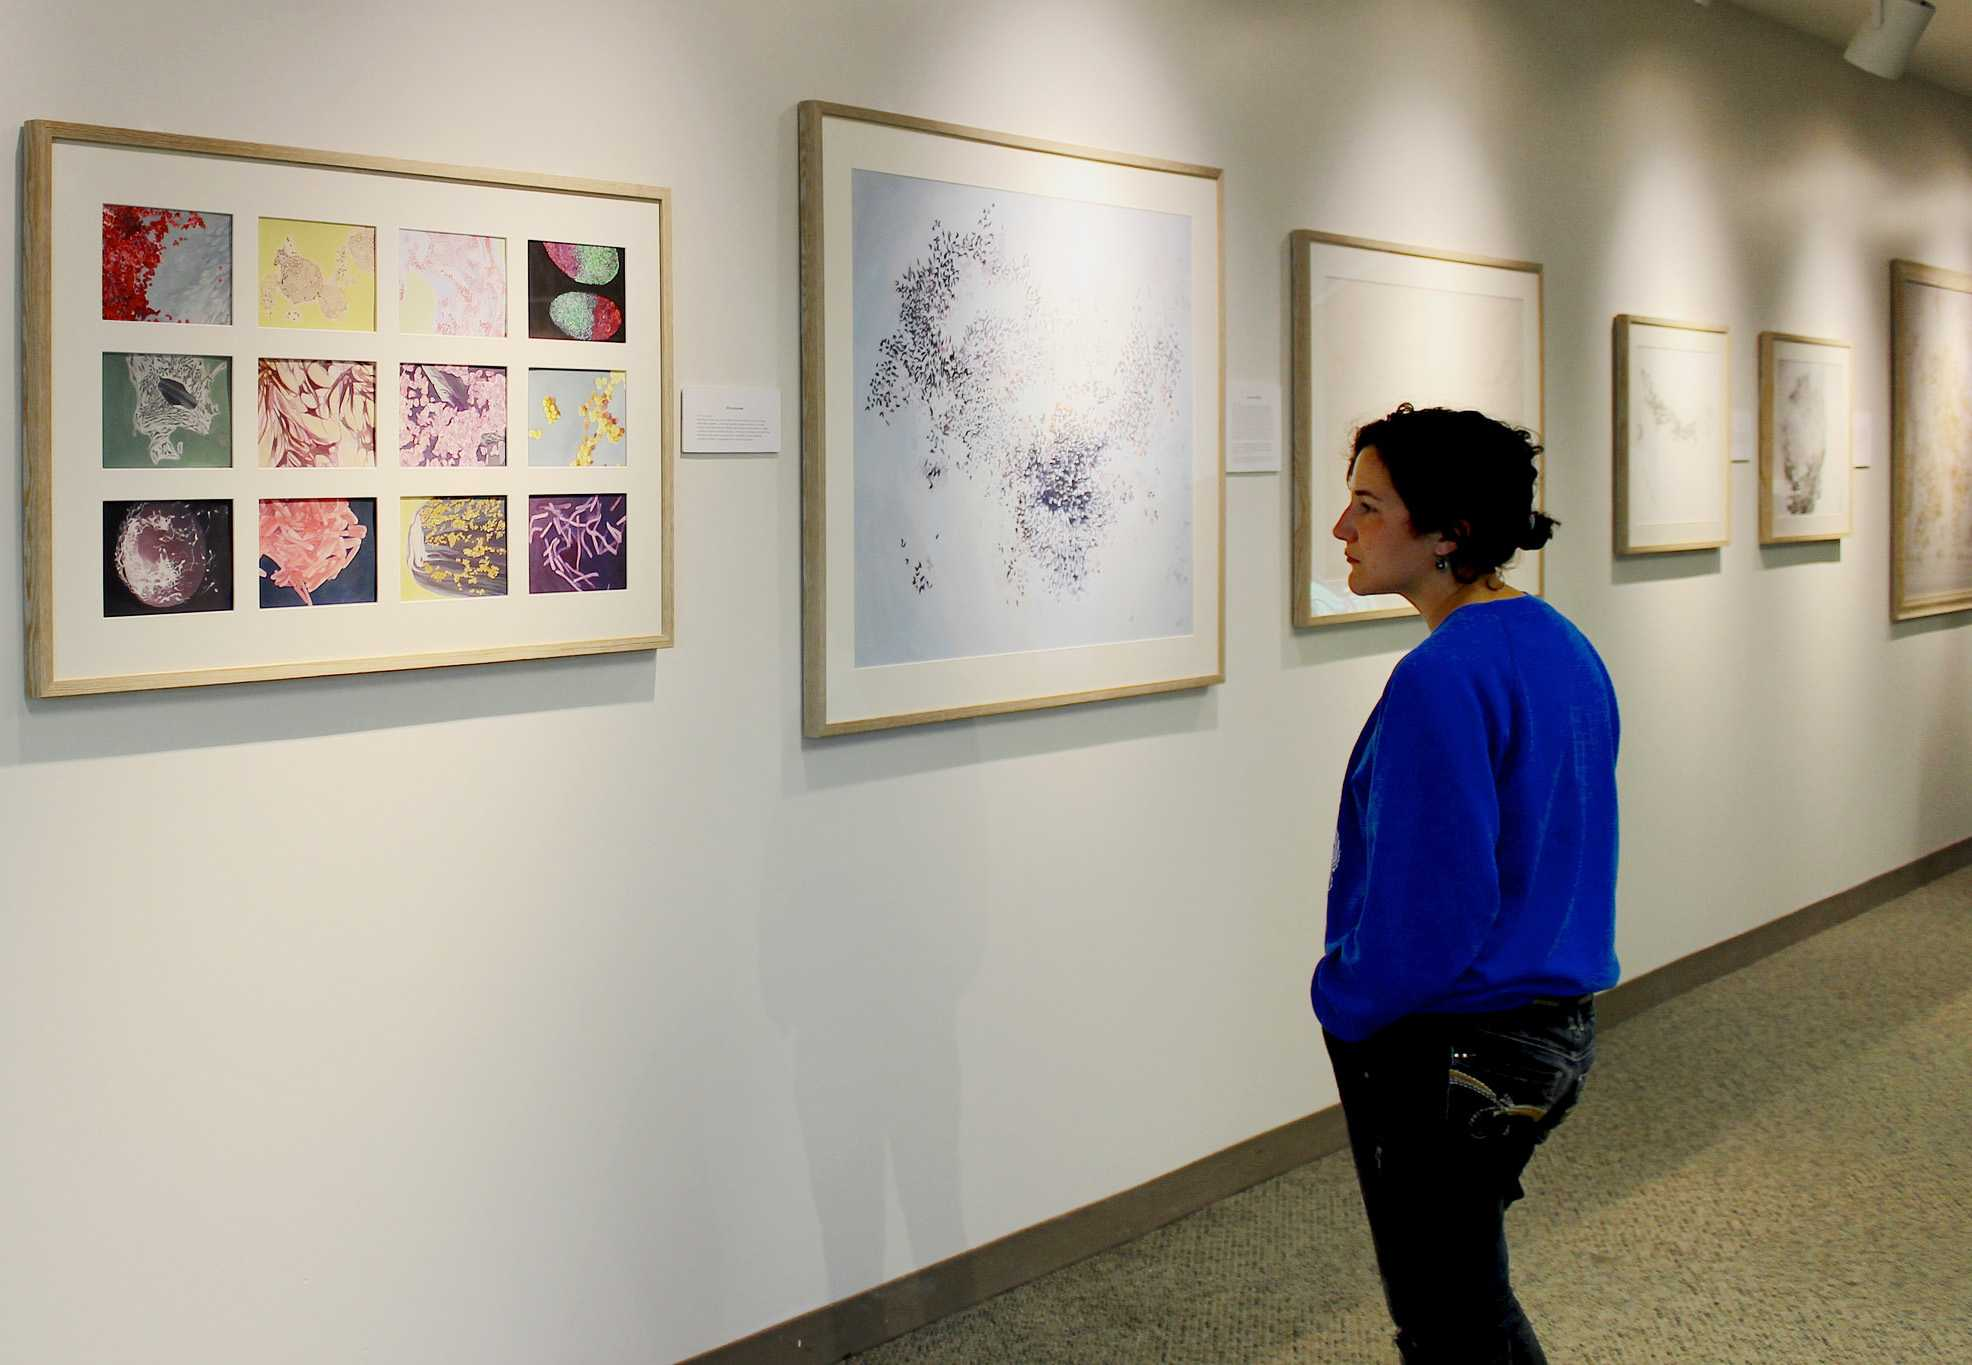 EMERGENCE: Smail Gallery Exhibit by Macalester Graduate Karina Li